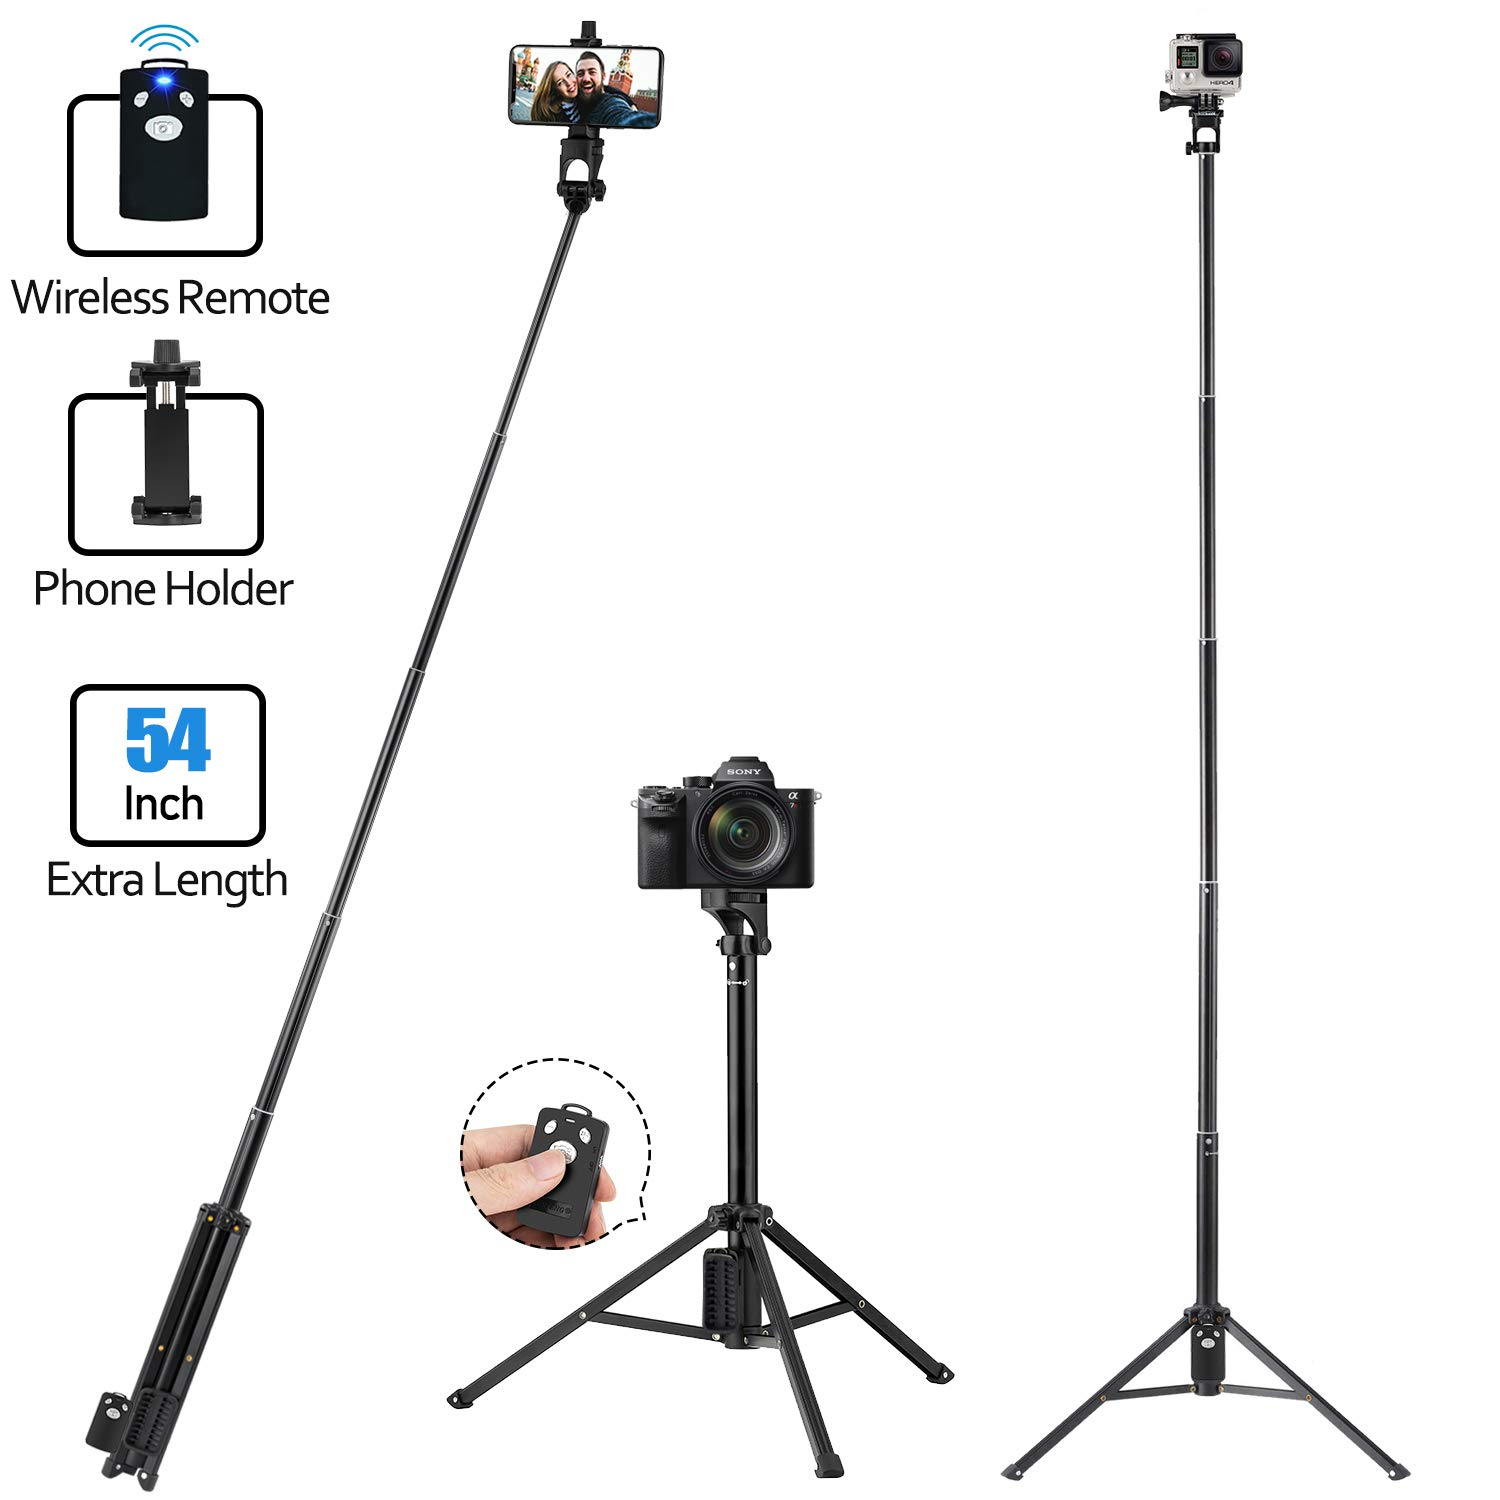 Tobeape Selfie Stick Tripod, Lightweight Aluminum Digital/Action Camera Tripod, 54-inch Extendable Phone Tripod Included Wireless Remote and Phone Holder Compact All Smartphones